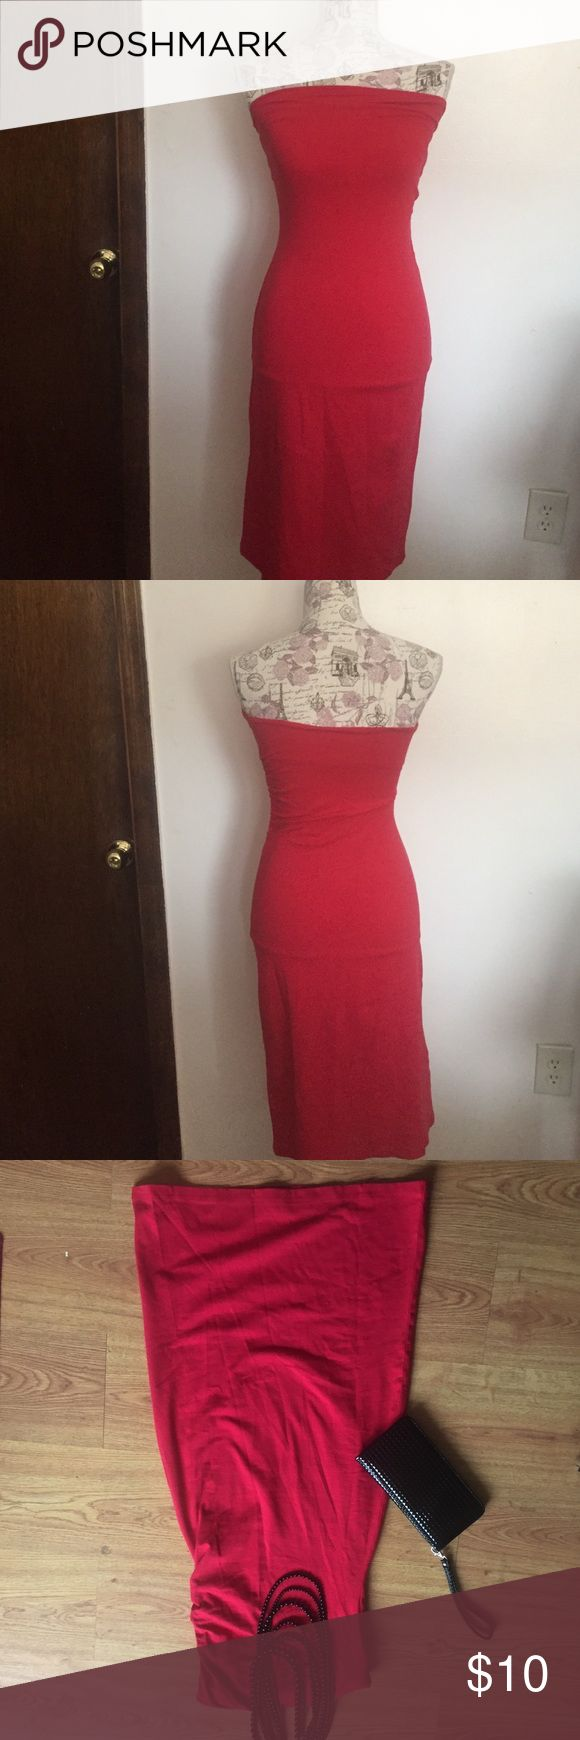 MODA International Casual Strapless Dress Casually Stylish Strapless MODA international dress features gathering on one side | 35 inches long | True size Small | 26 inches at the waist with some stretch to approximately 30 | Bundle to save ❤️ Moda International Dresses